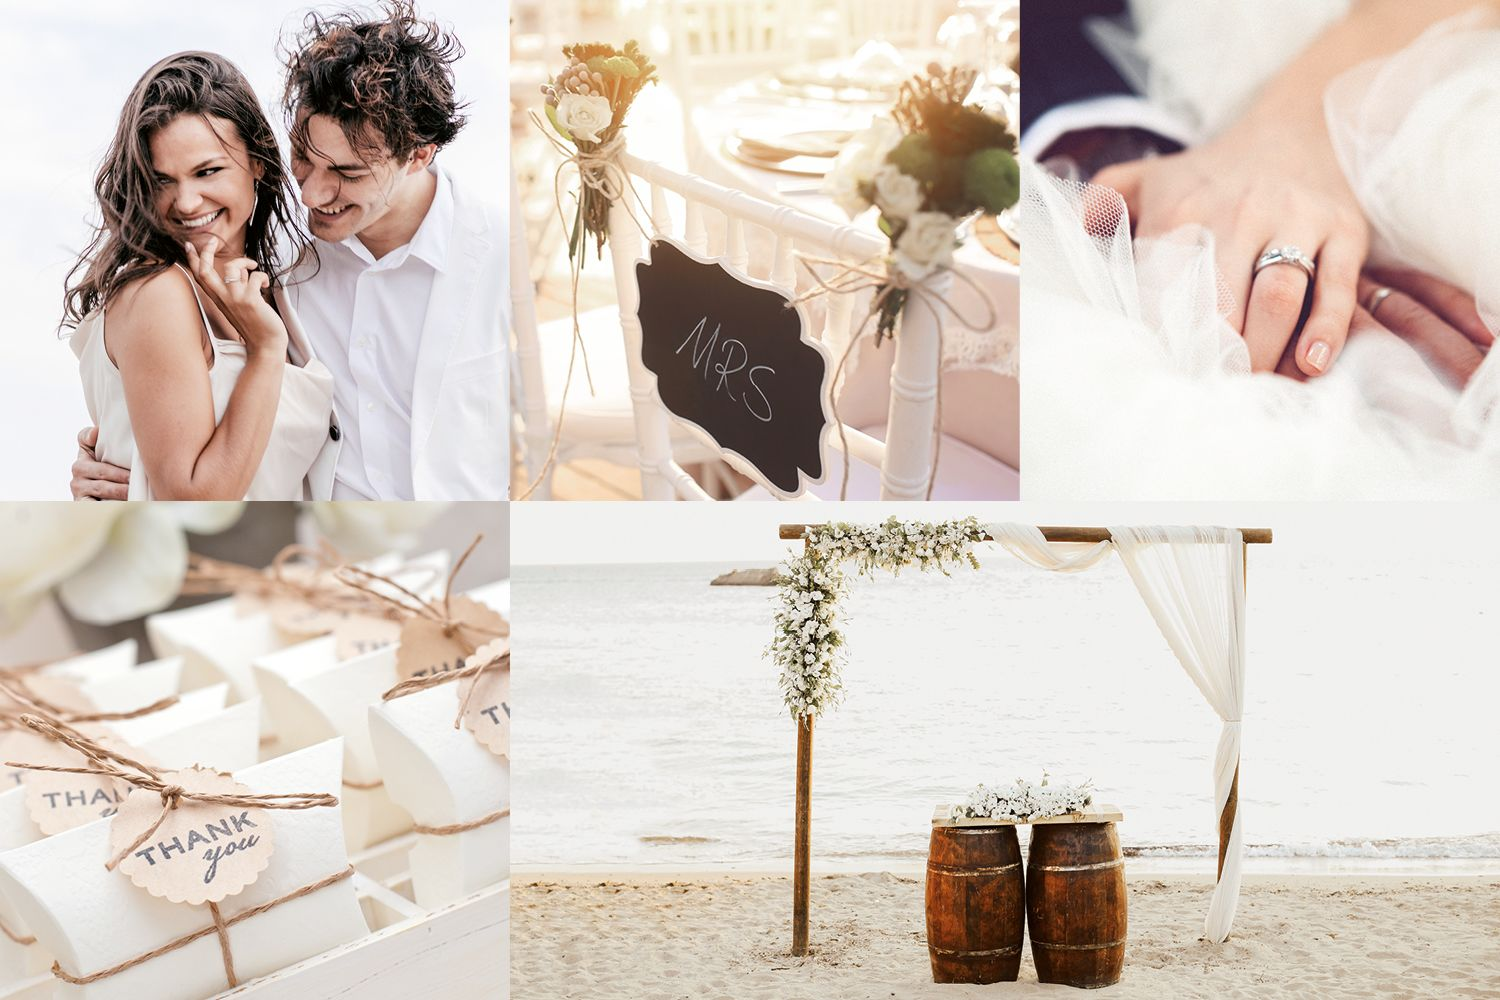 Embrace Your Love: Einfach heiraten